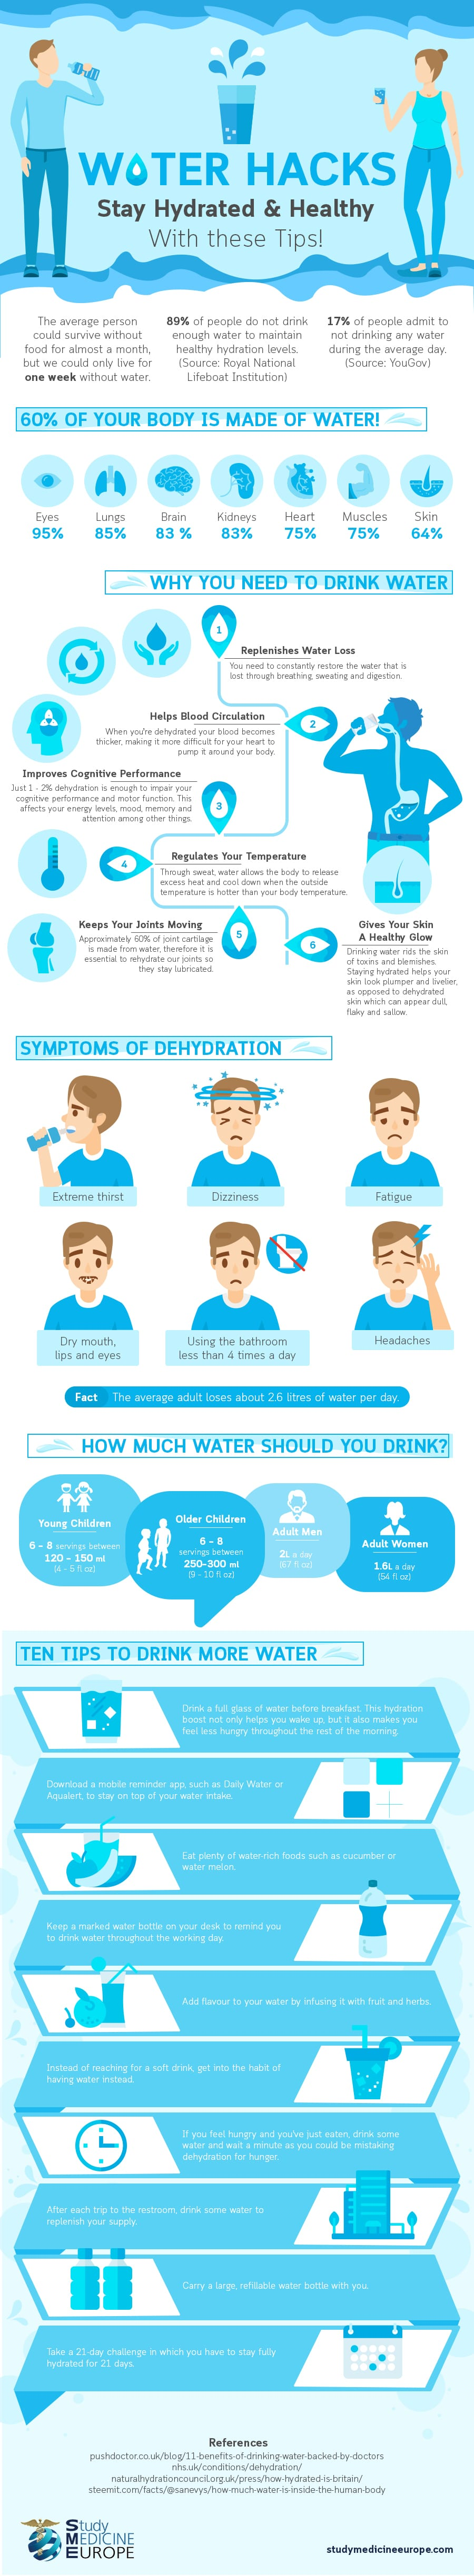 water hacks stay hydrated infographic-alignthoughts